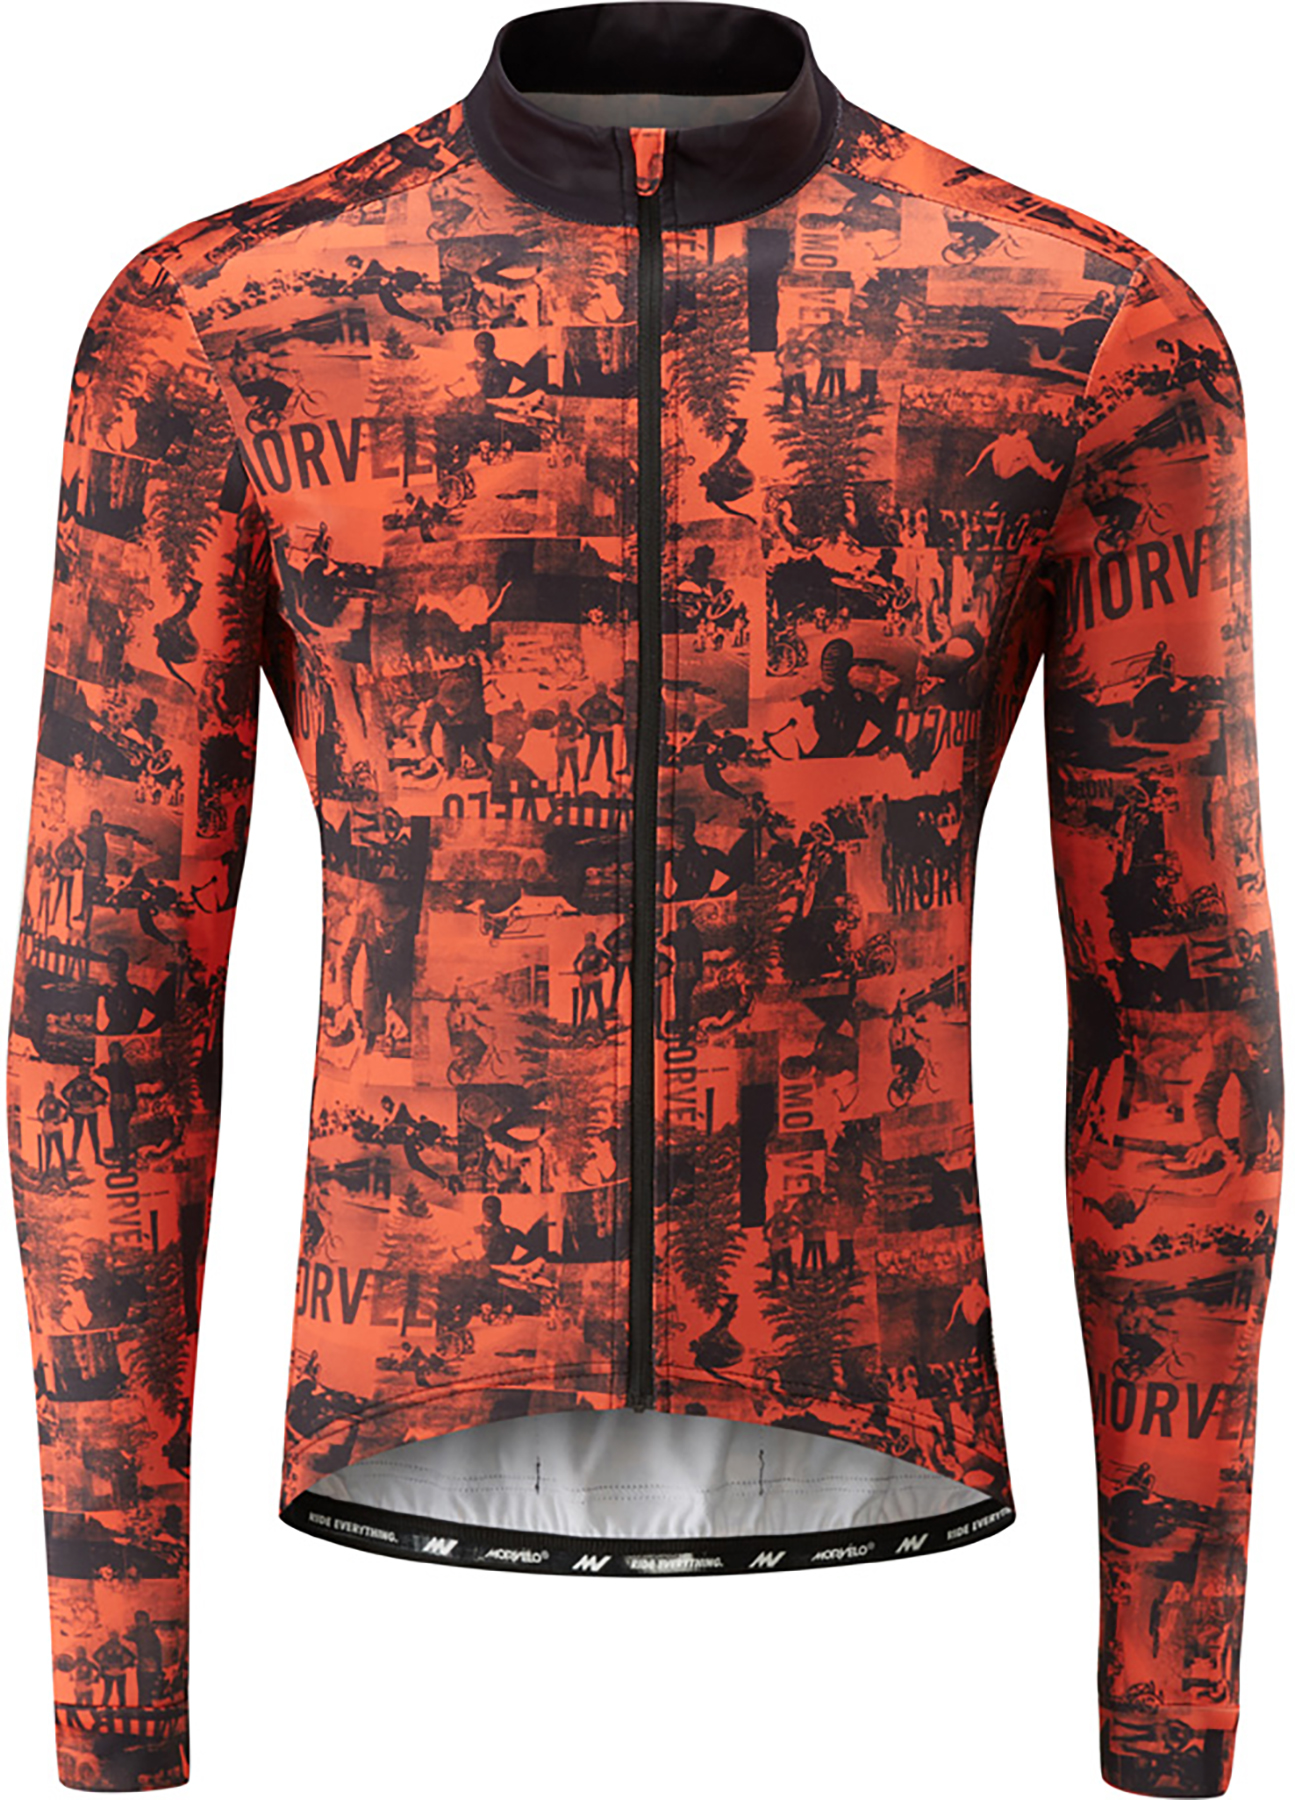 Morvelo Fanzine Thermoactive Long Sleeve Jersey | Trøjer